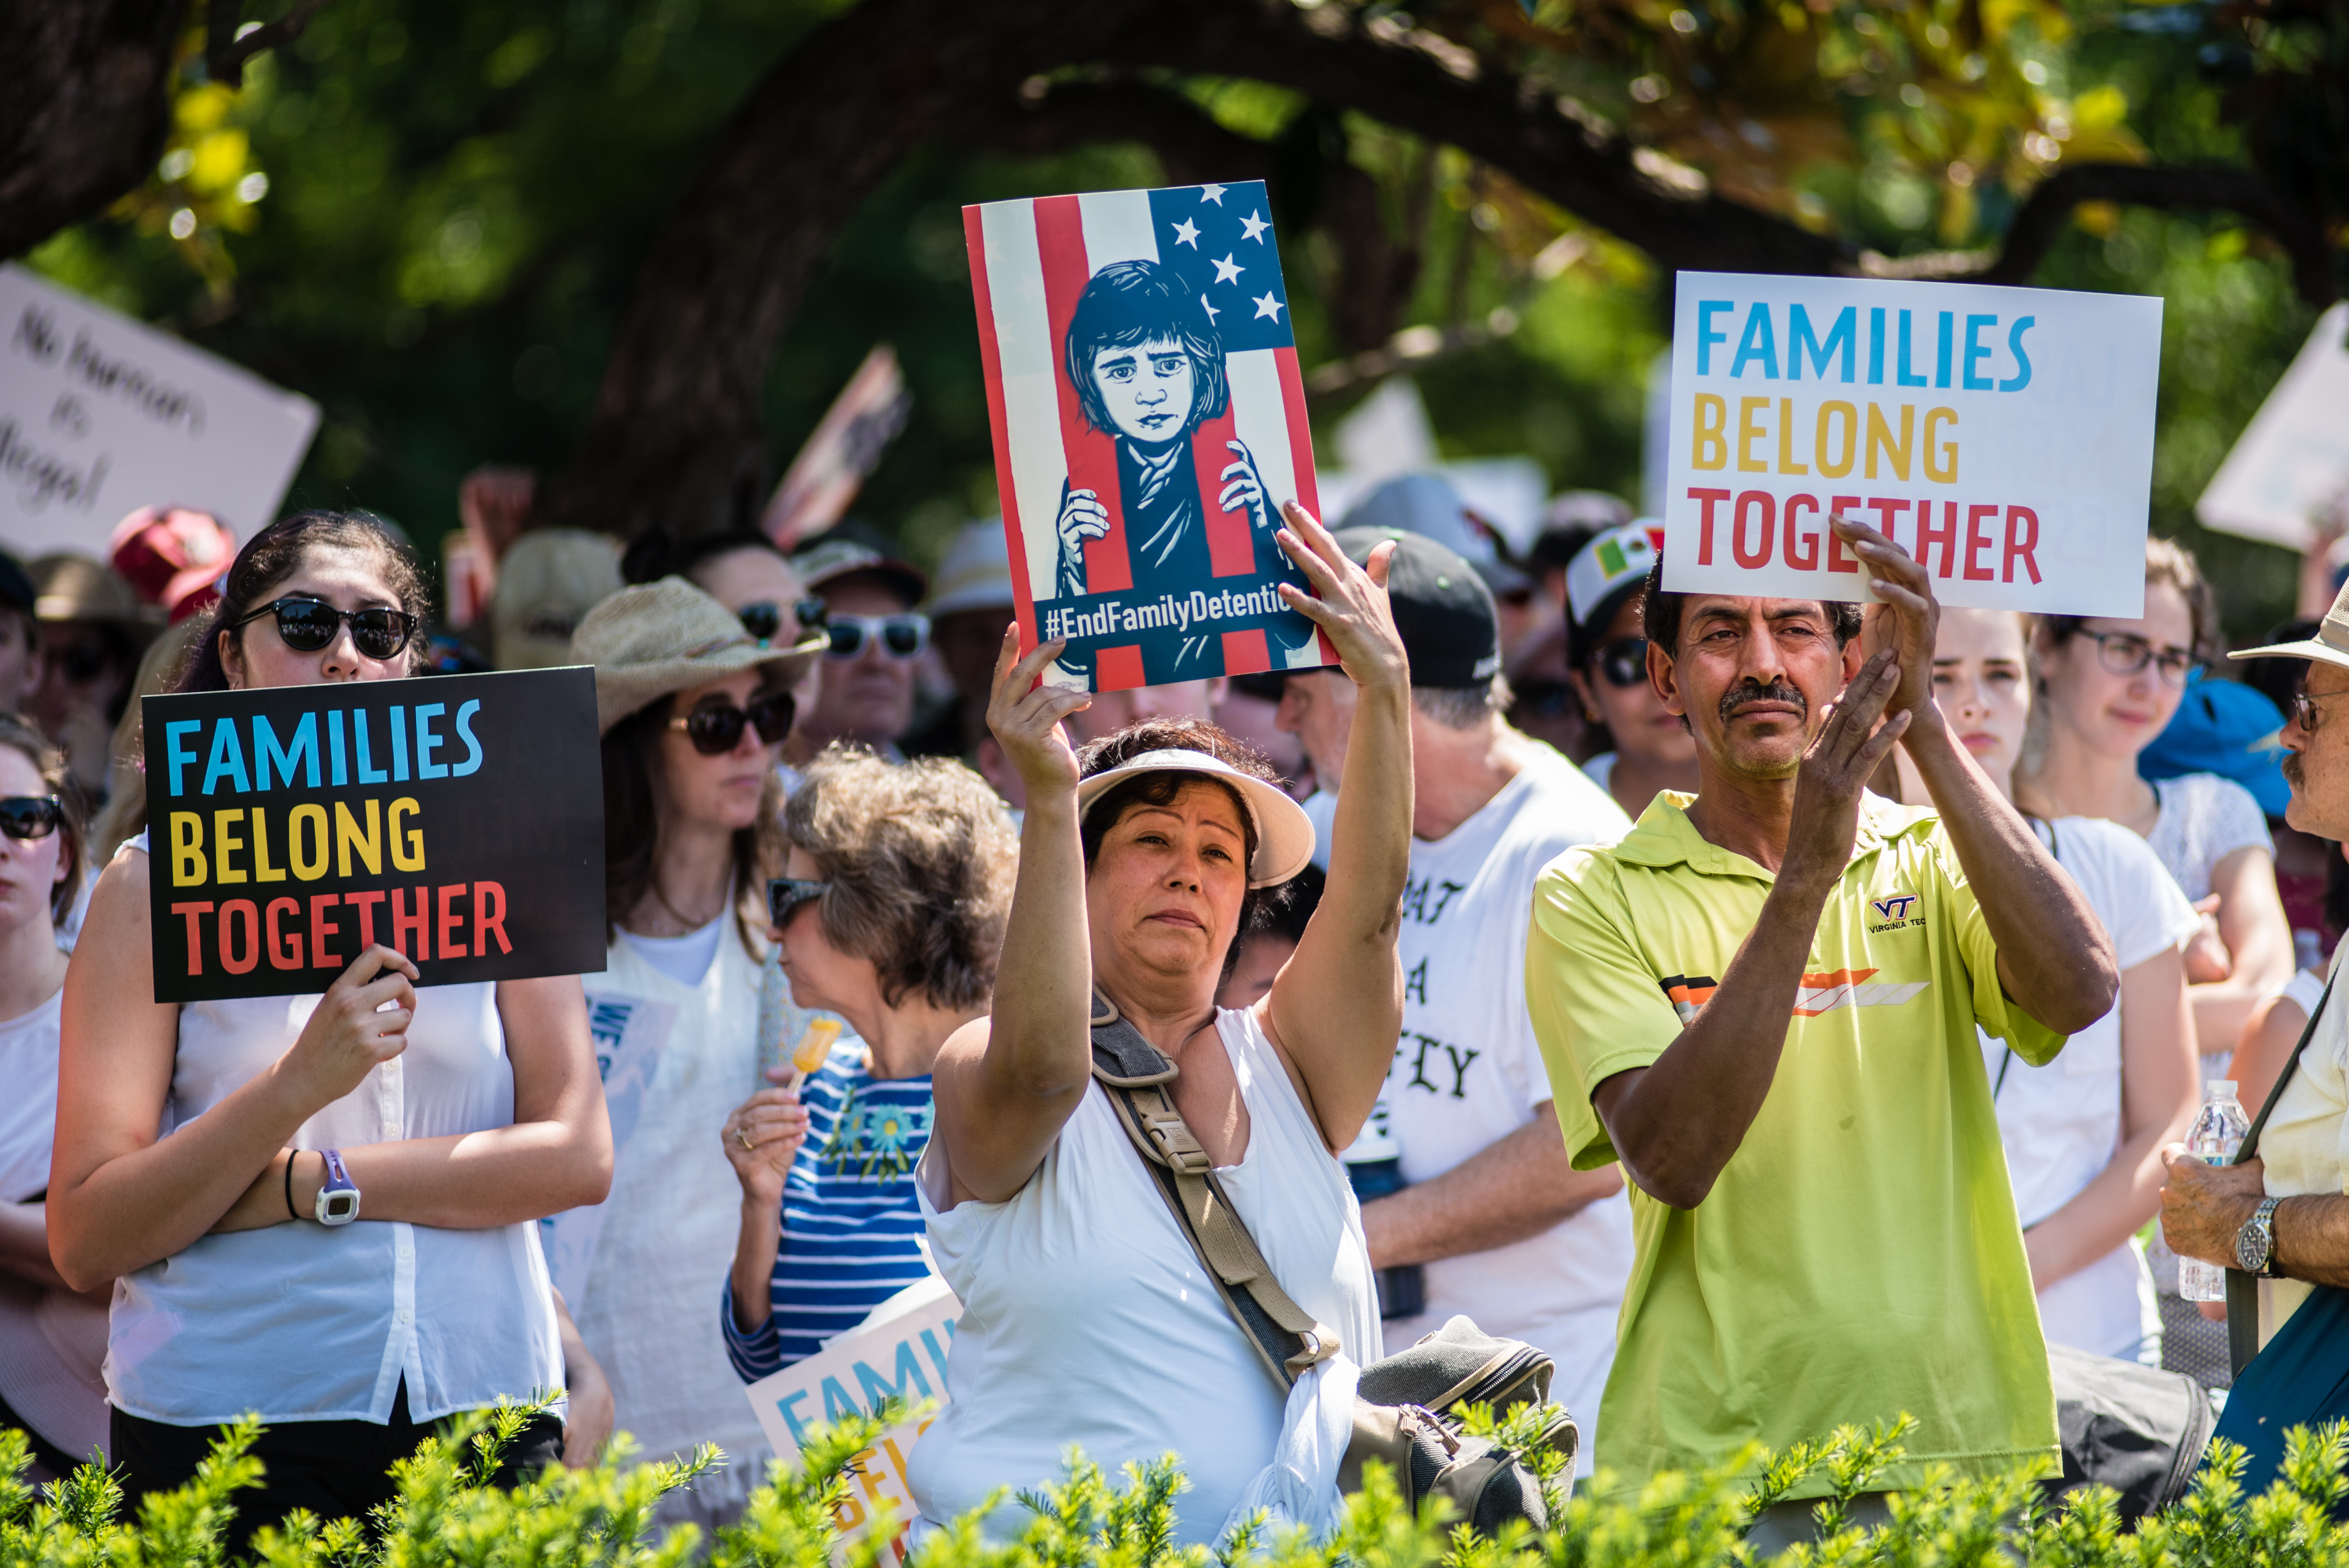 Protestors of the Trump Administration's immigration policy participate in a rally at Lafayette Square then march to the Justice Department. Billed as the Families Belong Together Rally and March, the action in the District is one of a reported 700 events nationwide.